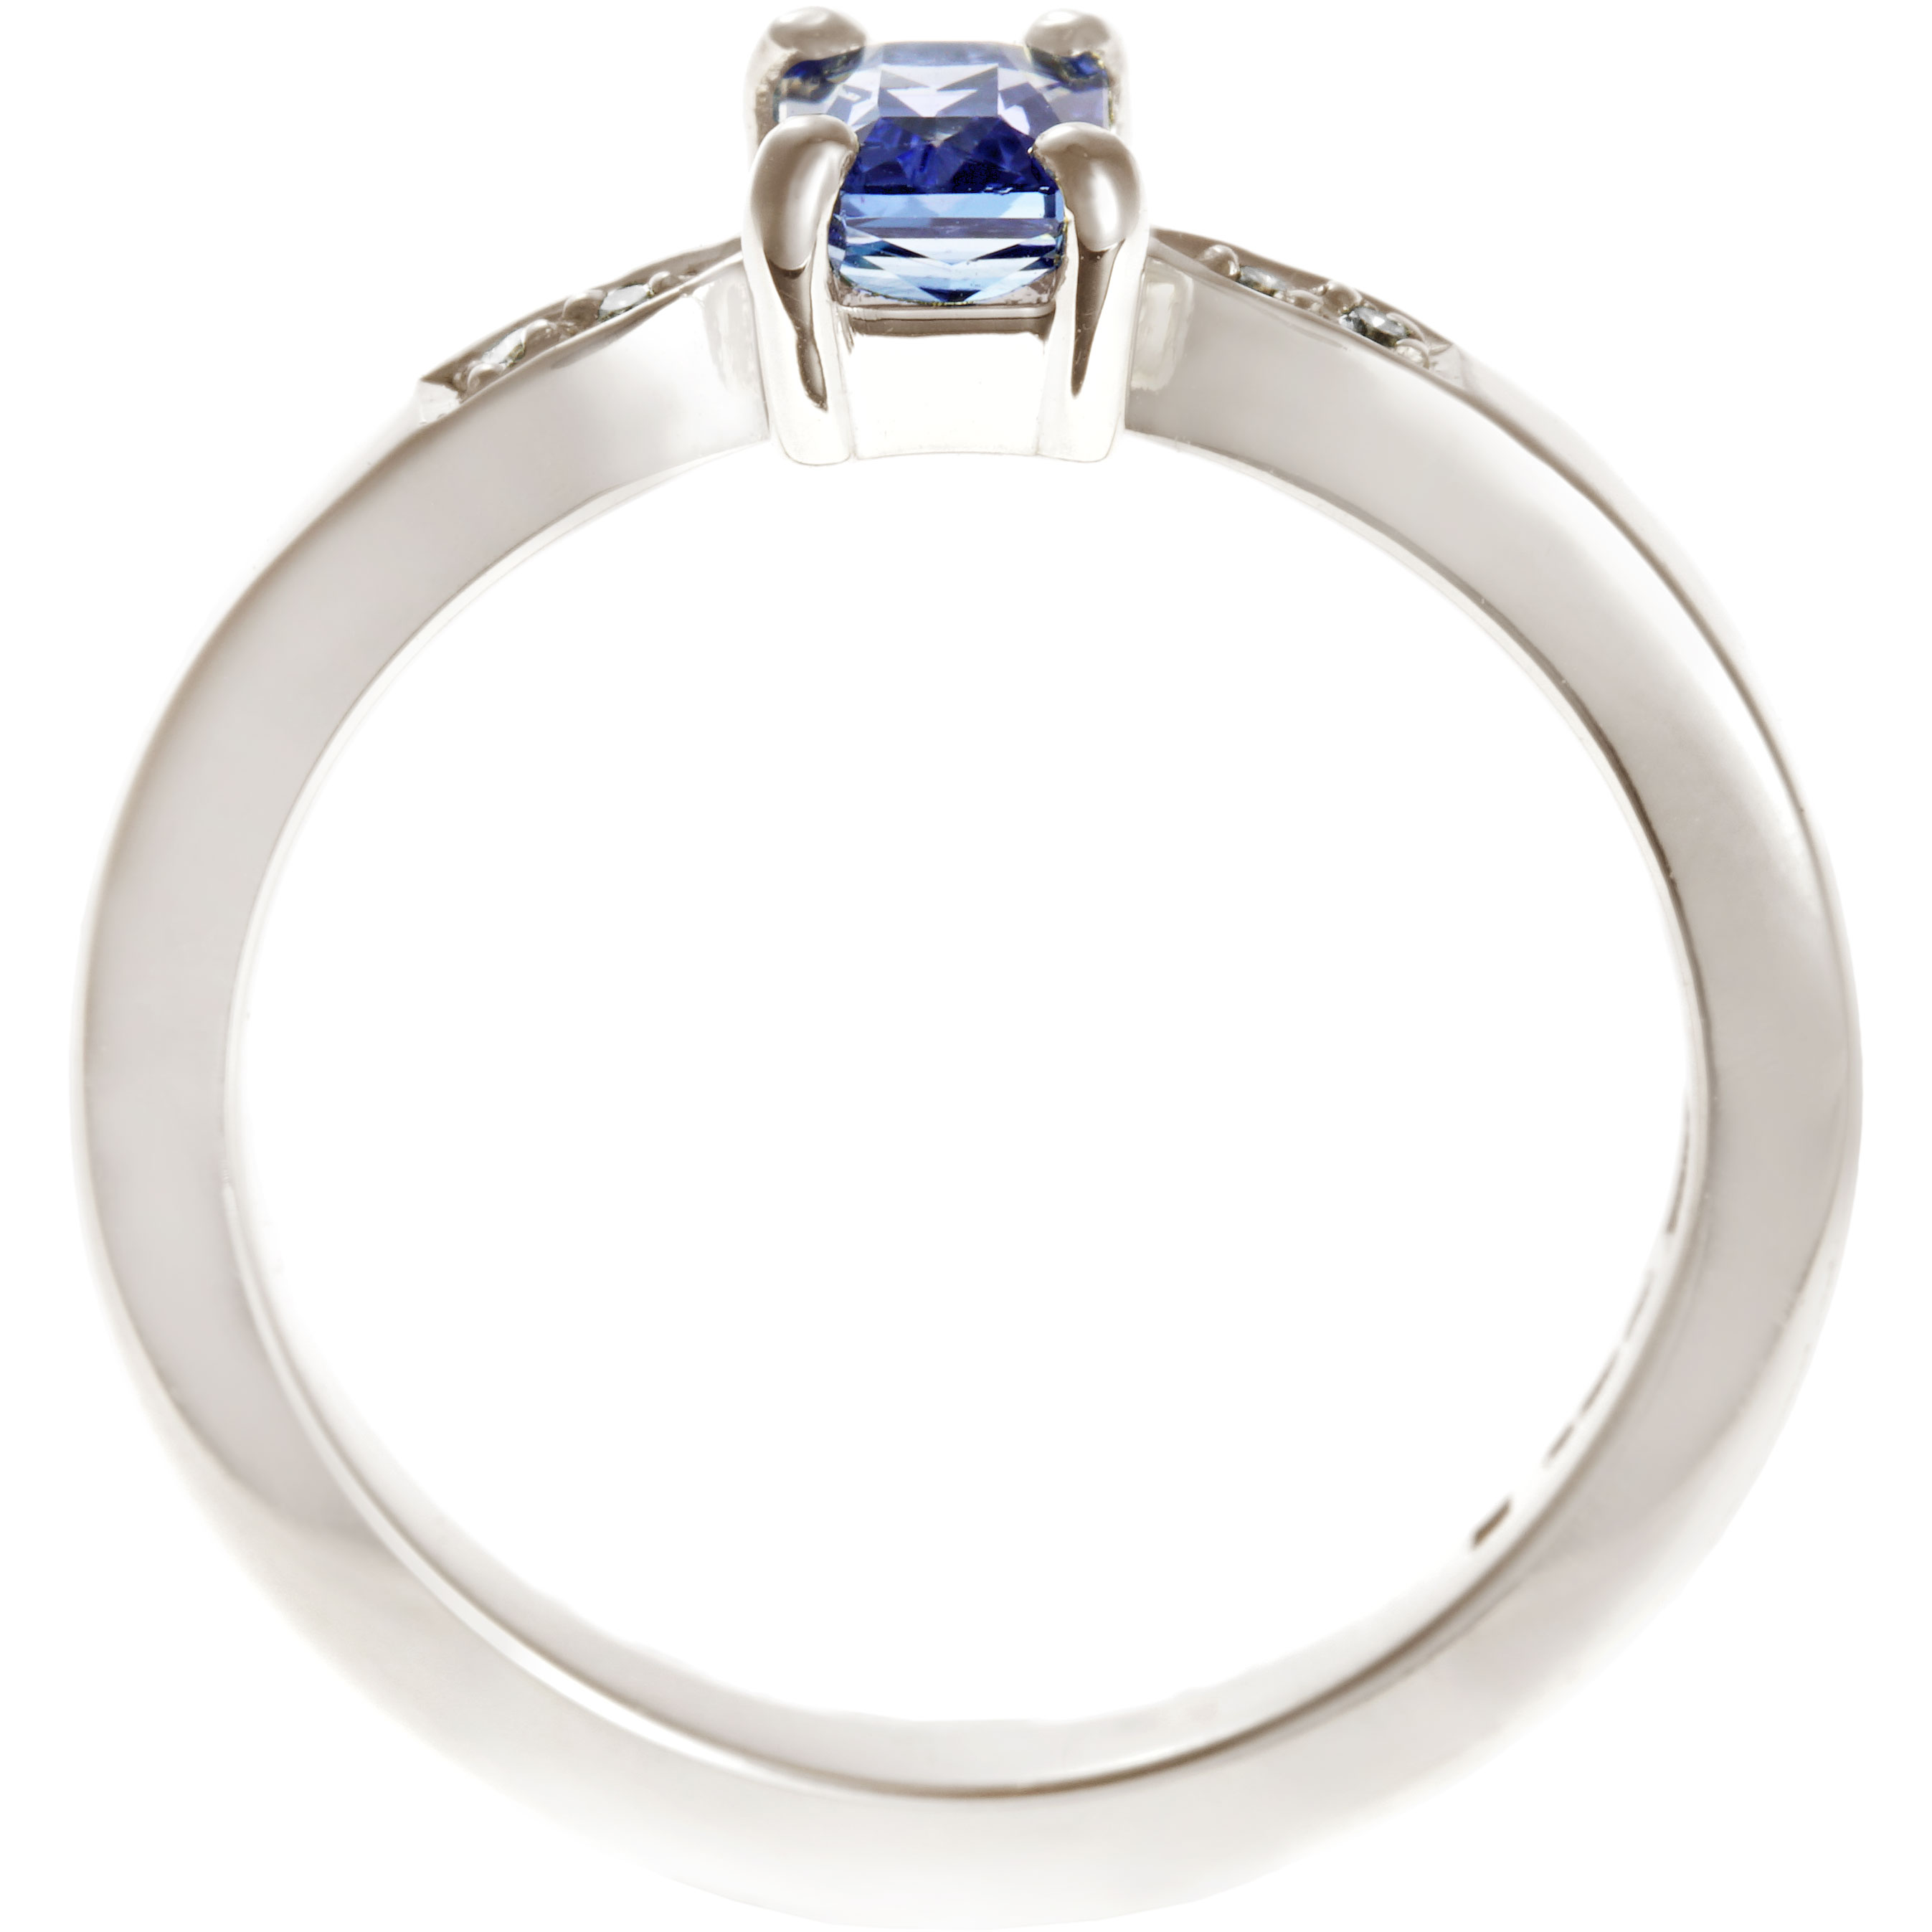 trillion pin sapphire carat over with diamonds total cushioncut cut weight